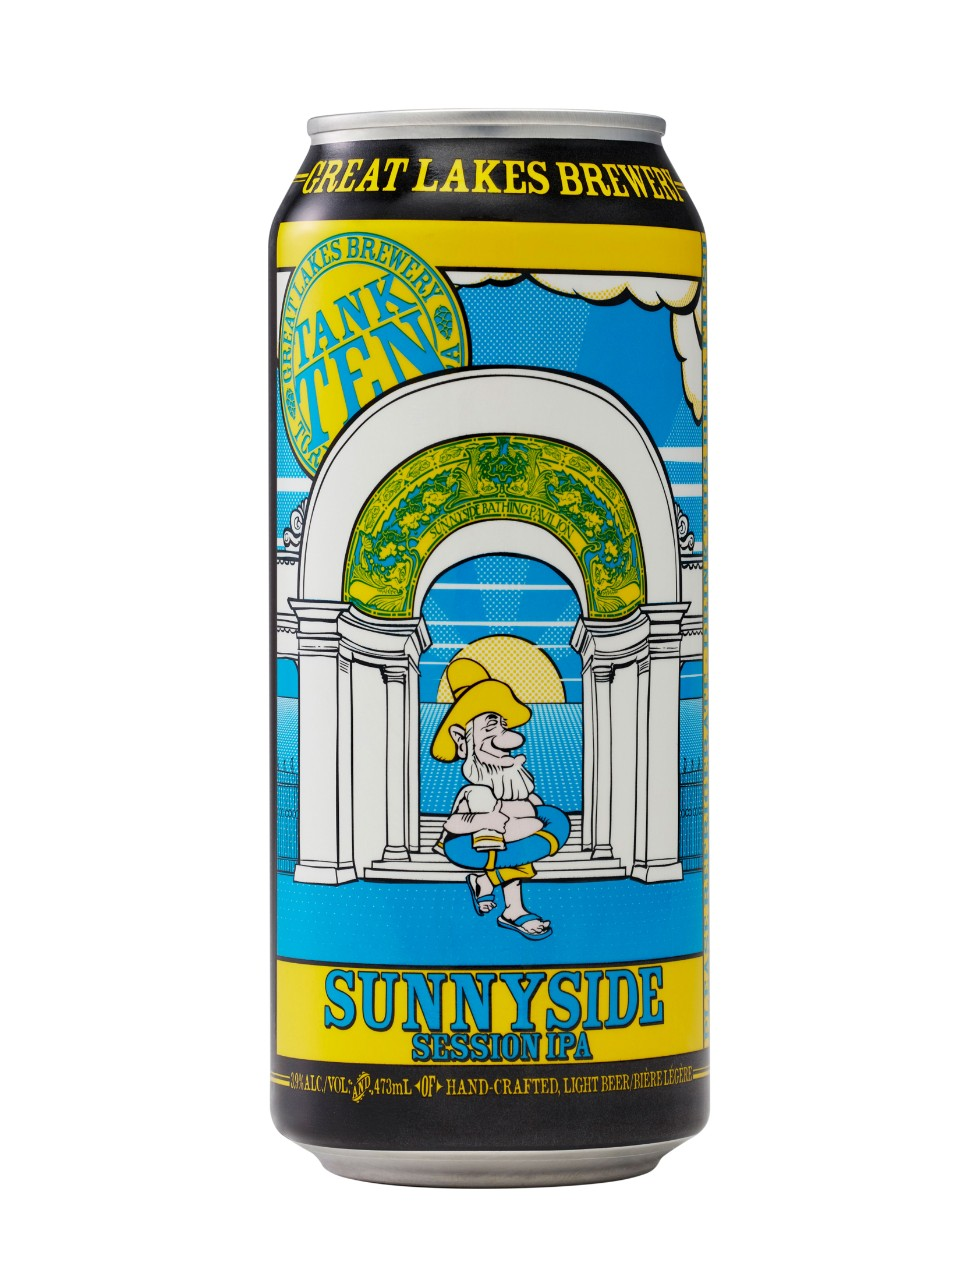 Sunnyside Session IPA